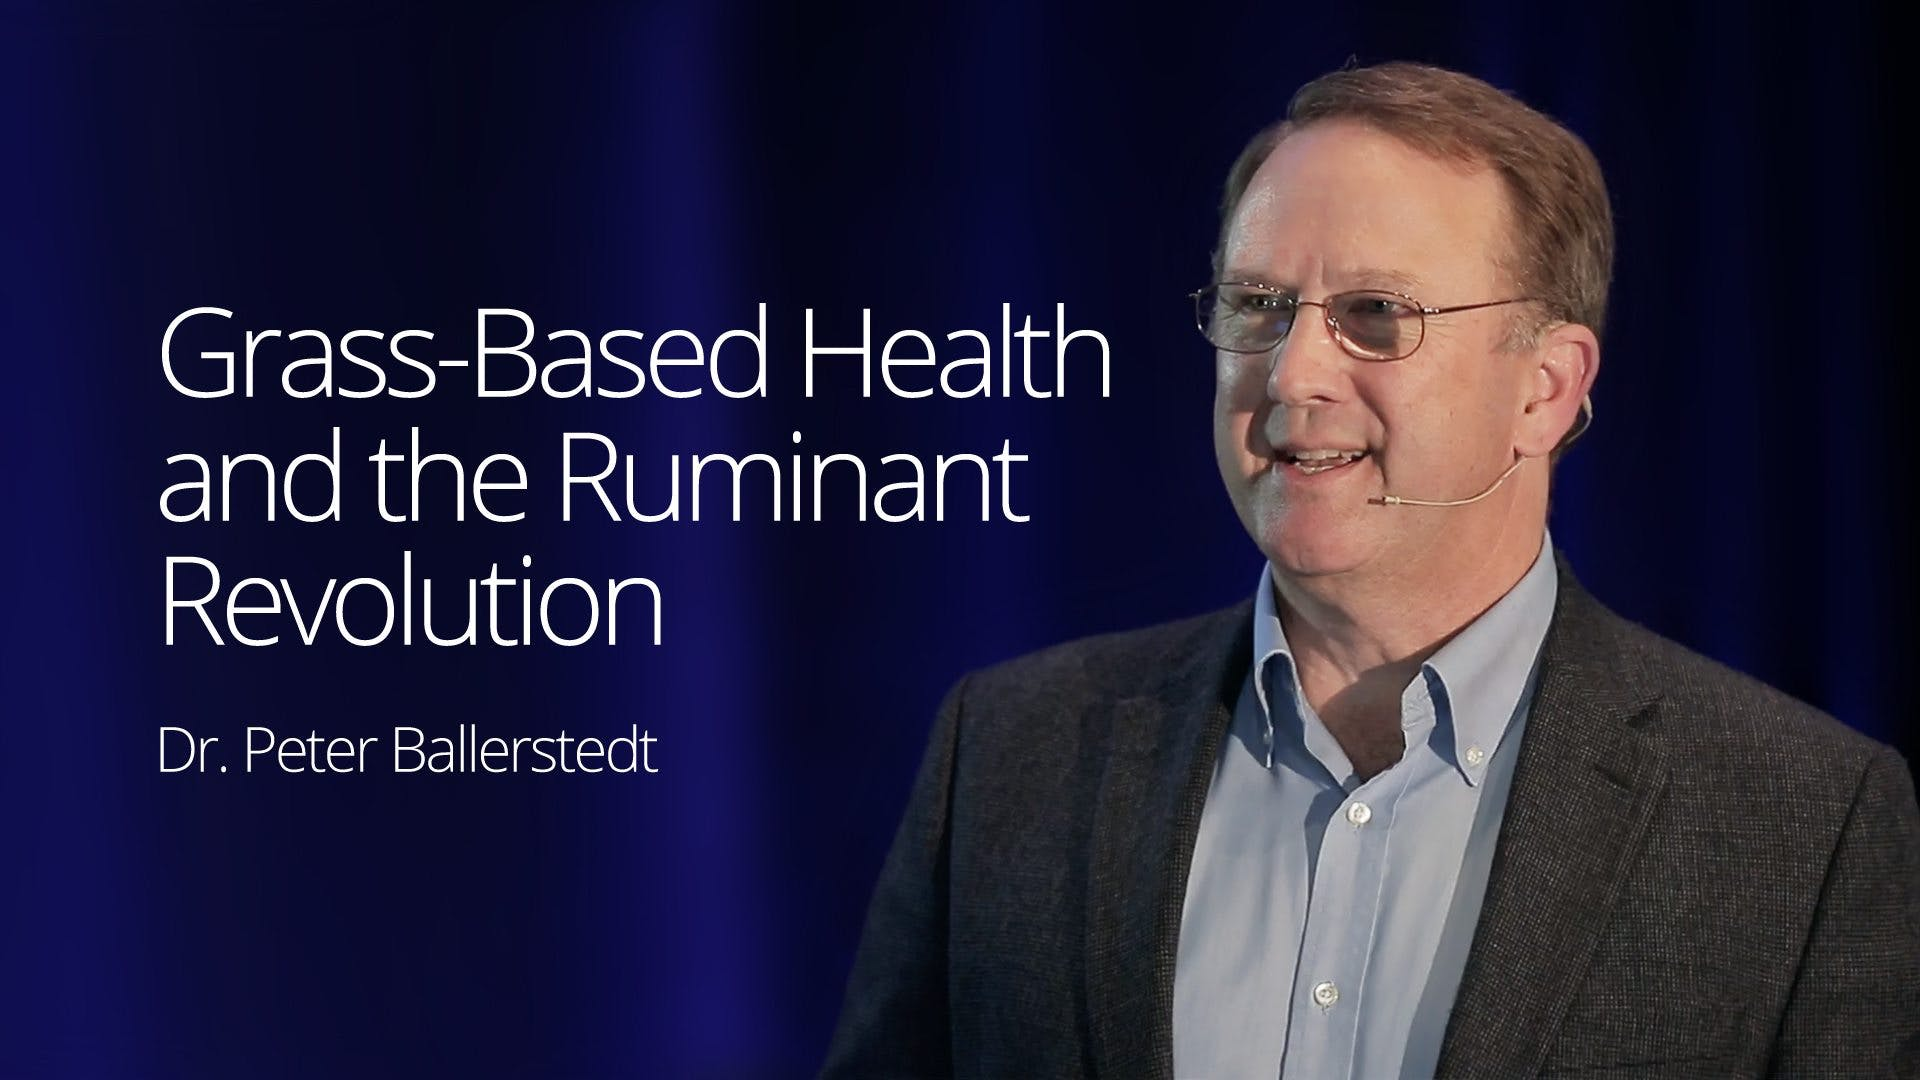 Grass based health and the ruminant revolution